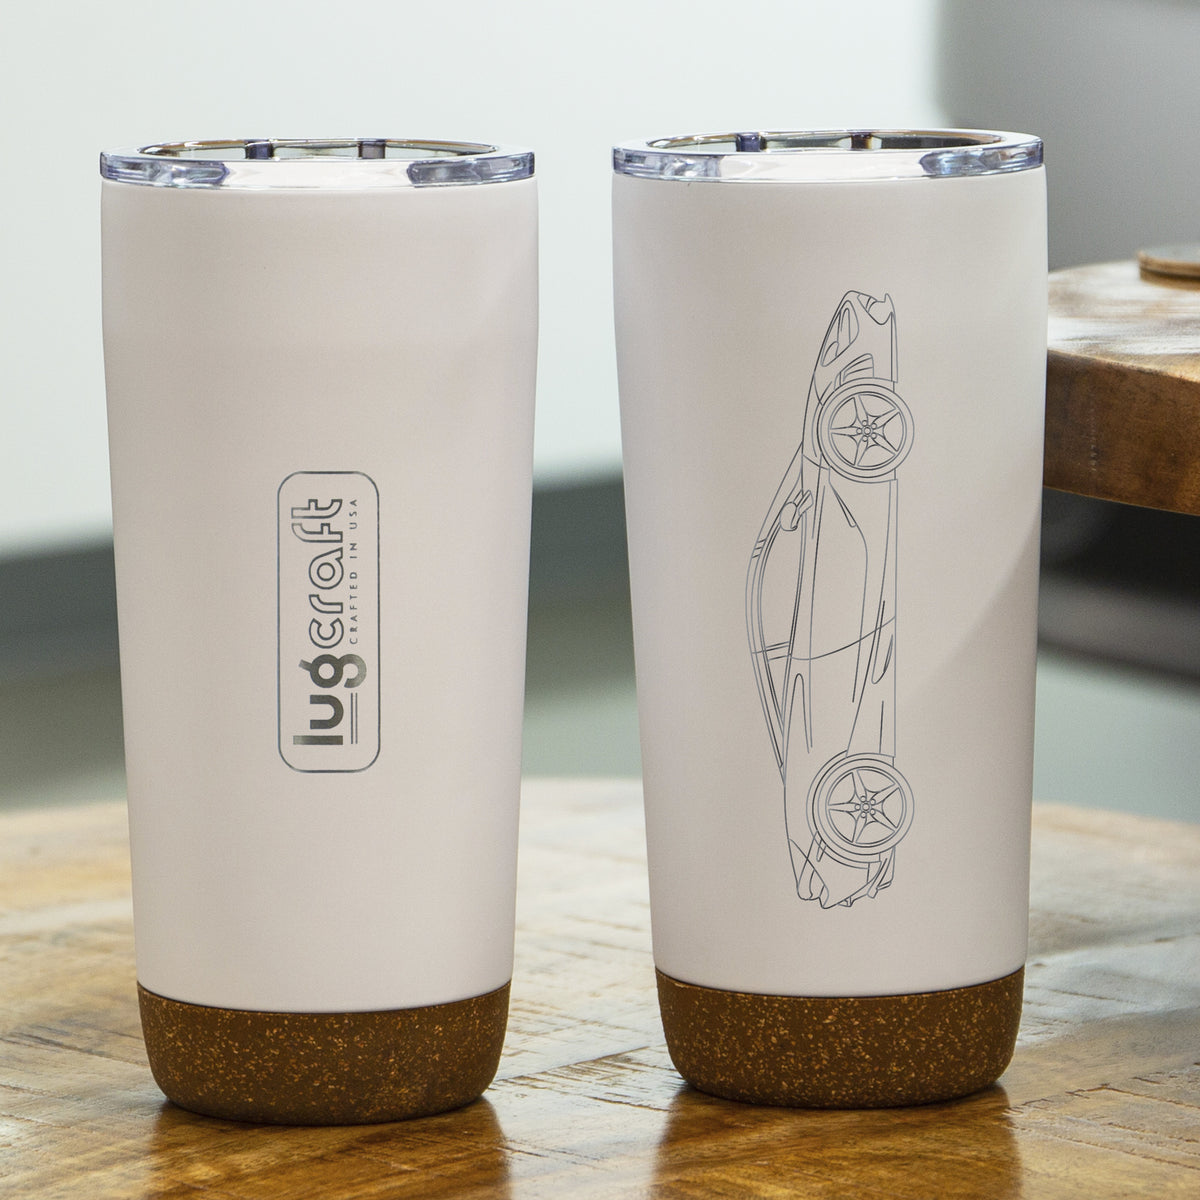 McLaren 720S Insulated Stainless Steel Coffee Tumbler - 20 oz